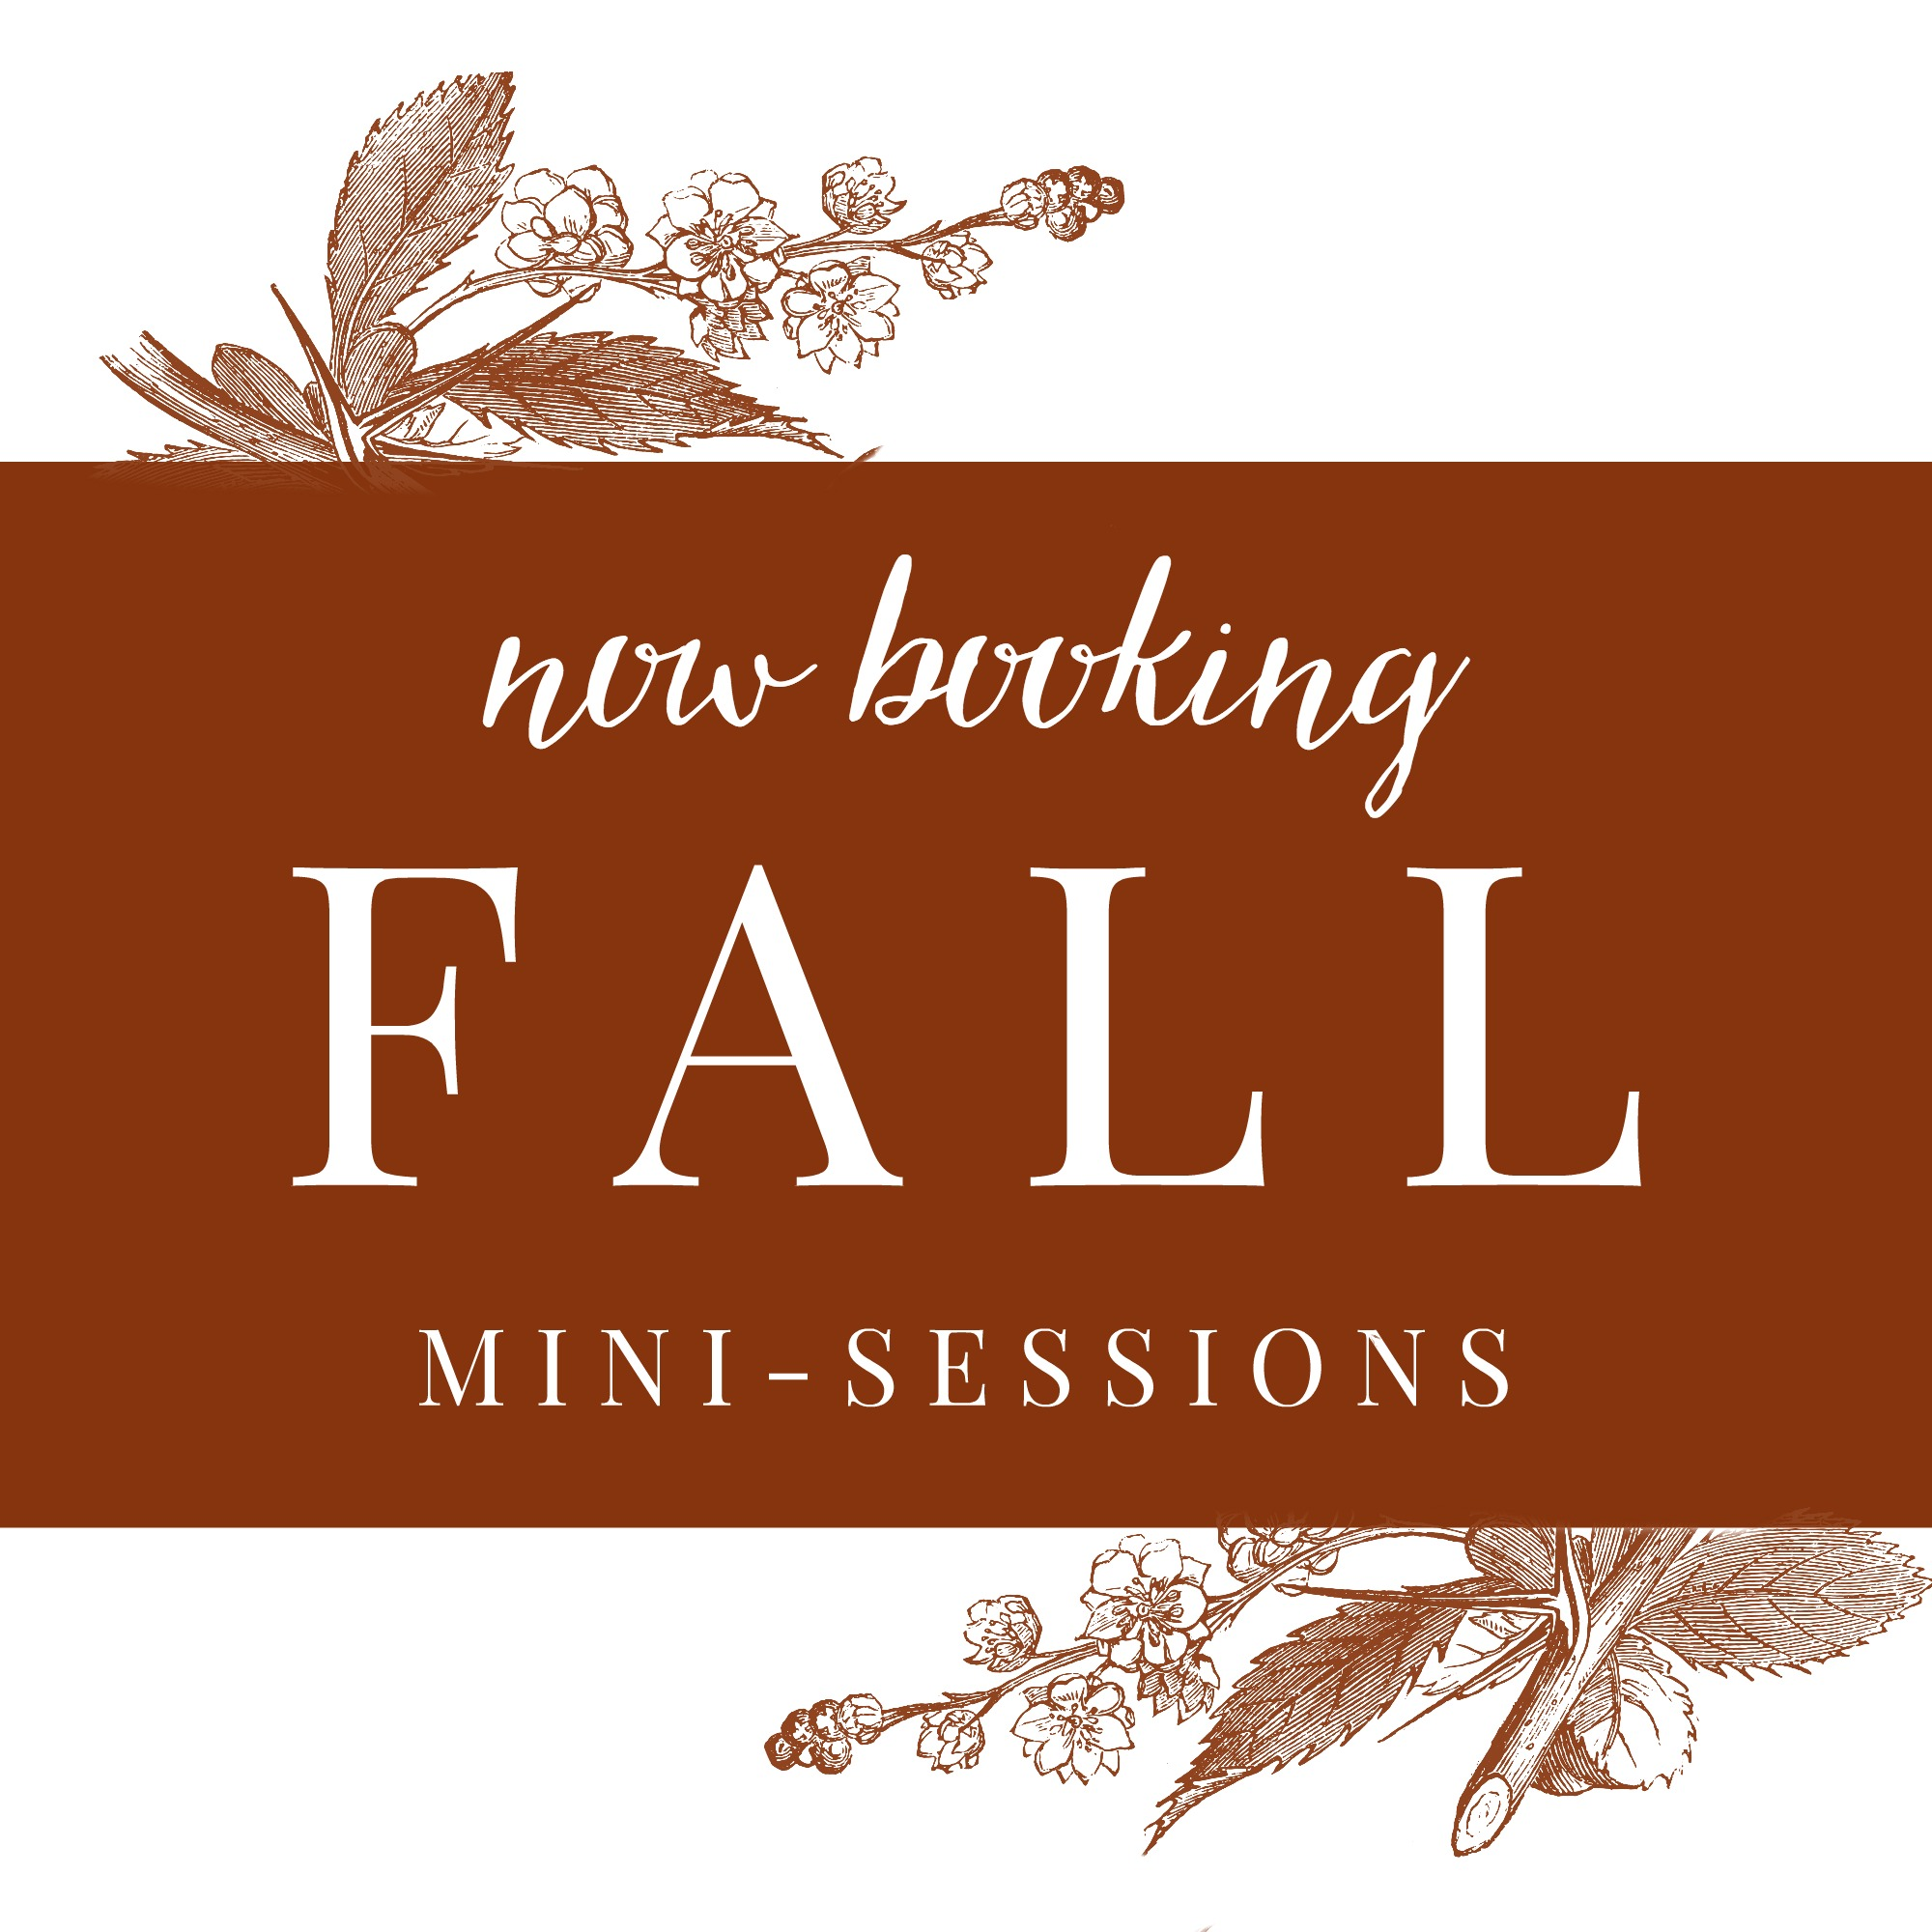 Now booking fall mini-sessions! On Saturday November 5th and November 12th I am holding several 30-minute sessions. $90 for a 30 minute session. You will receive 10 fully-edited high-resolution images both in color and in black and white (20 images total). Email me if you are interested in participating!   Thank you!